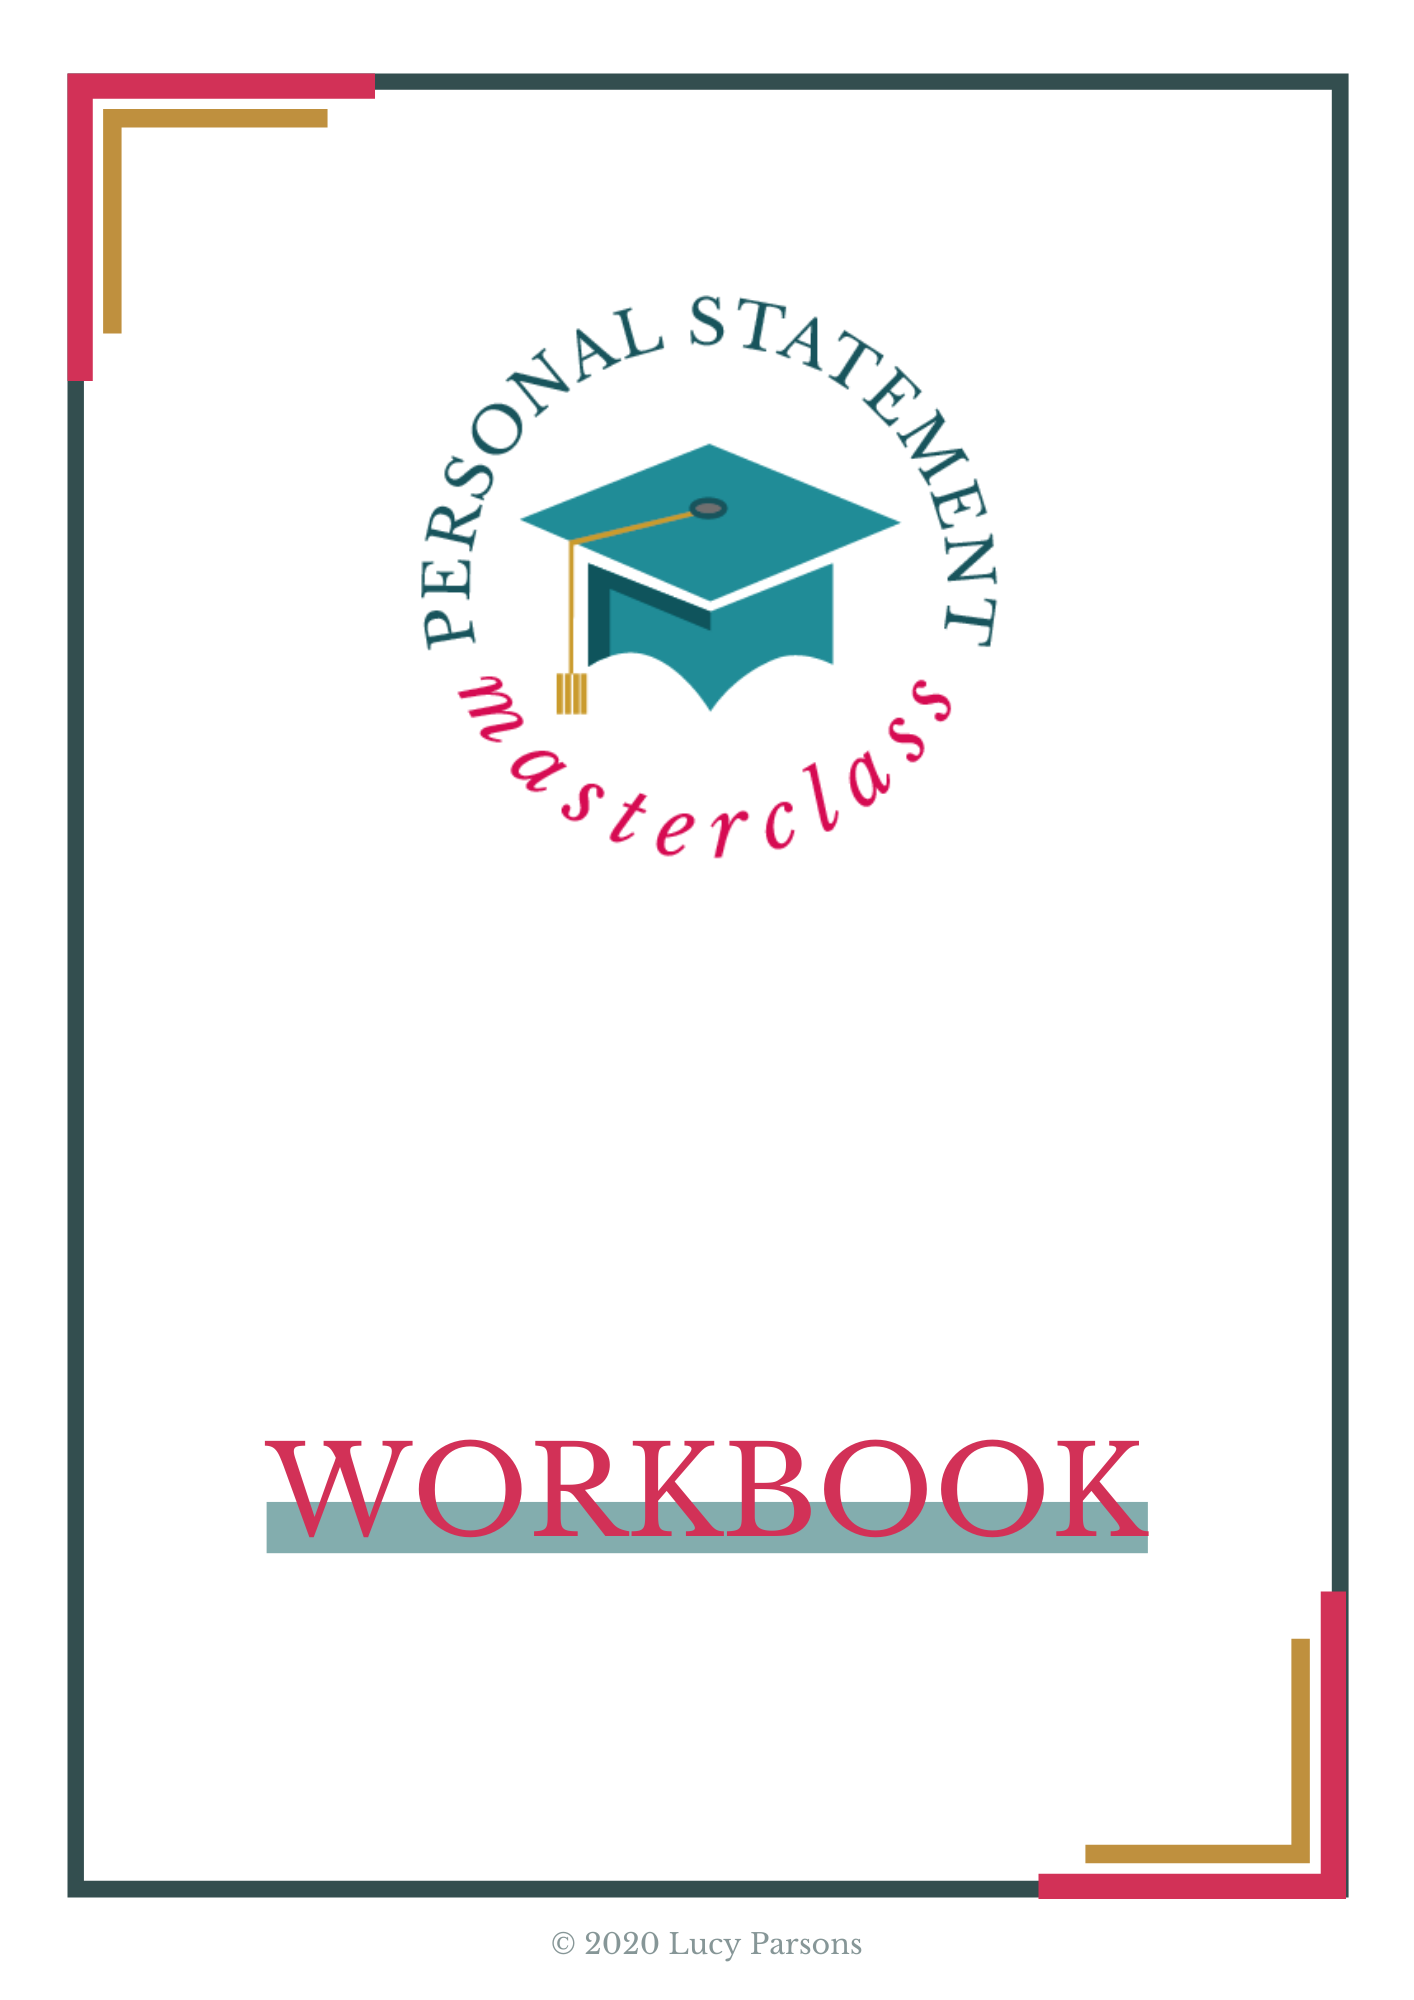 Personal Statement Masterclass workbook